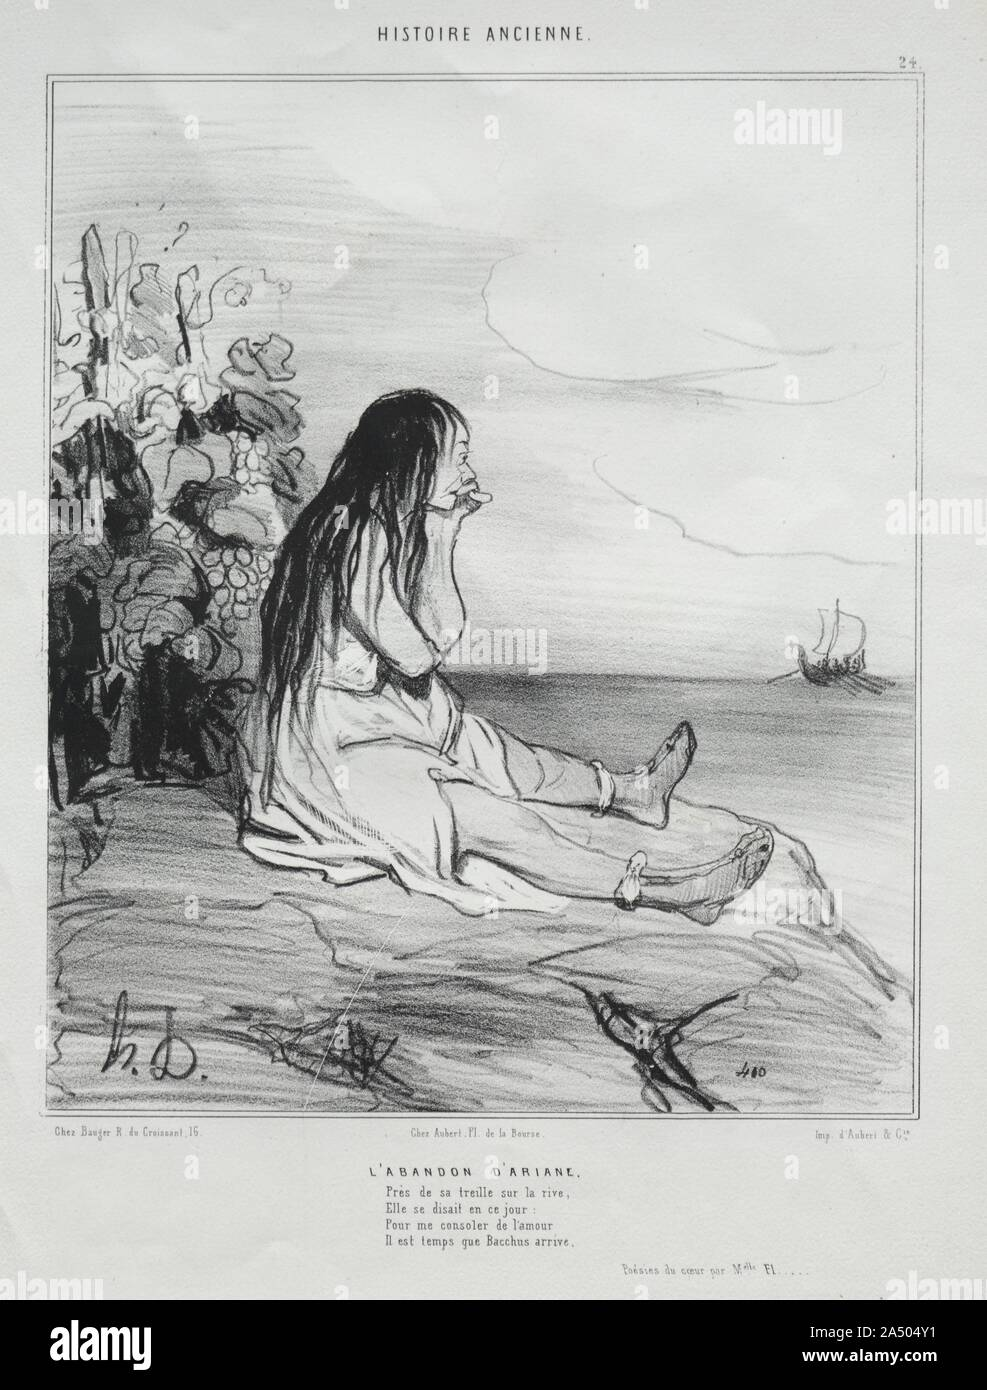 Ancient History, plate 24: The Abandonment of Ariadne, 4 September 1842. Stock Photo